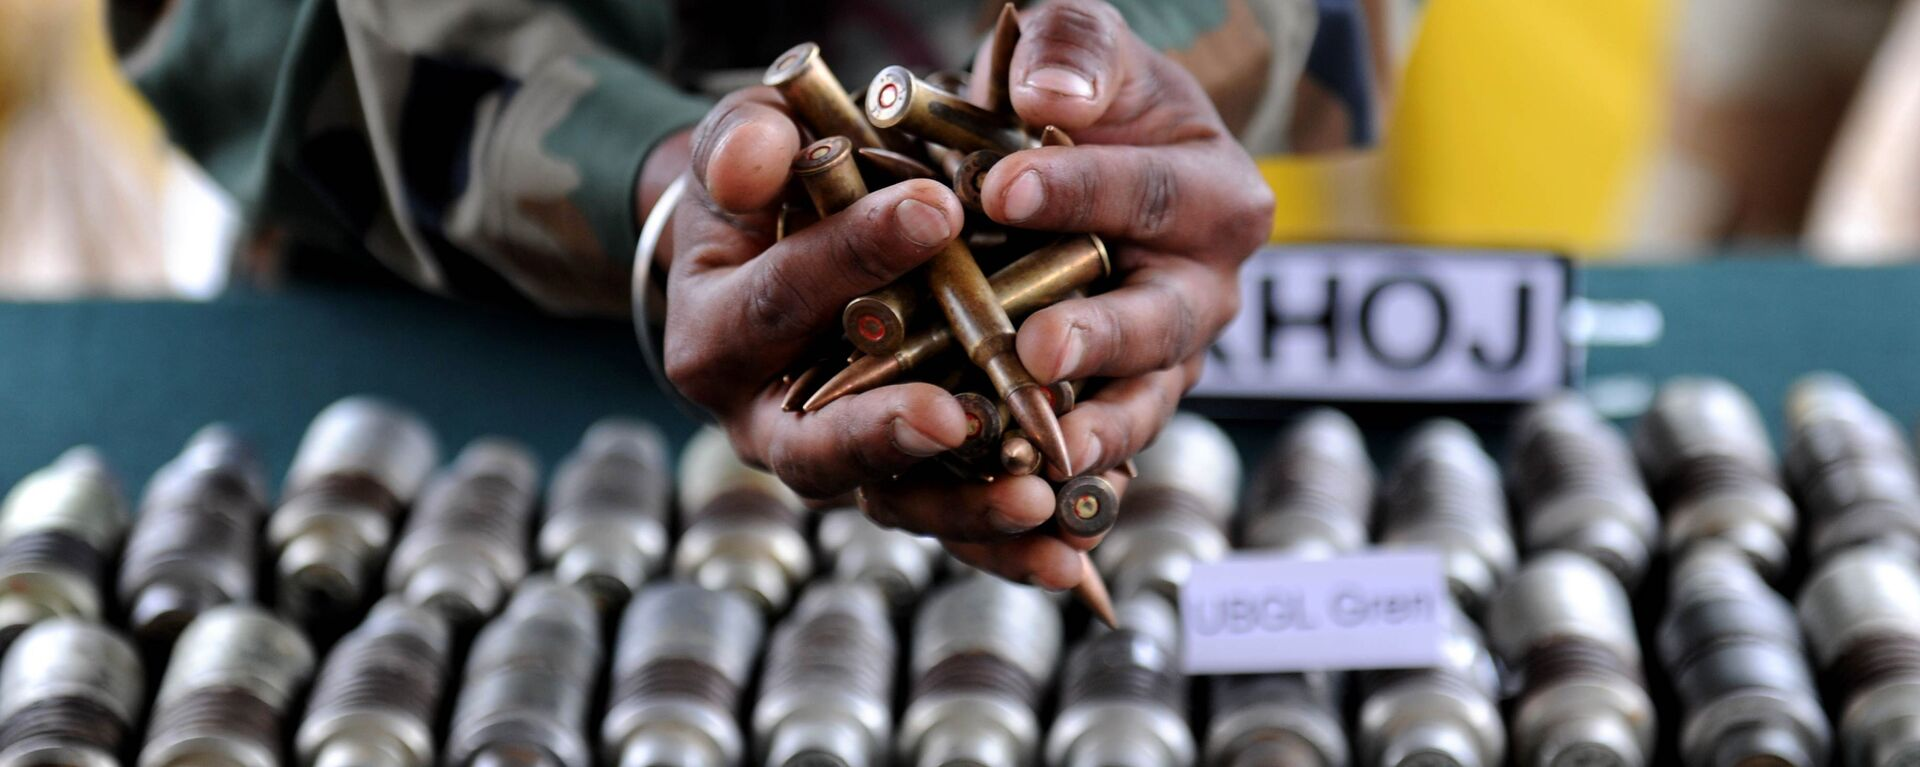 Indian army officials display arms and ammunition at Handwara in north Kashmir some 80 km from Srinagar on May 9,2011 - Sputnik International, 1920, 13.11.2019